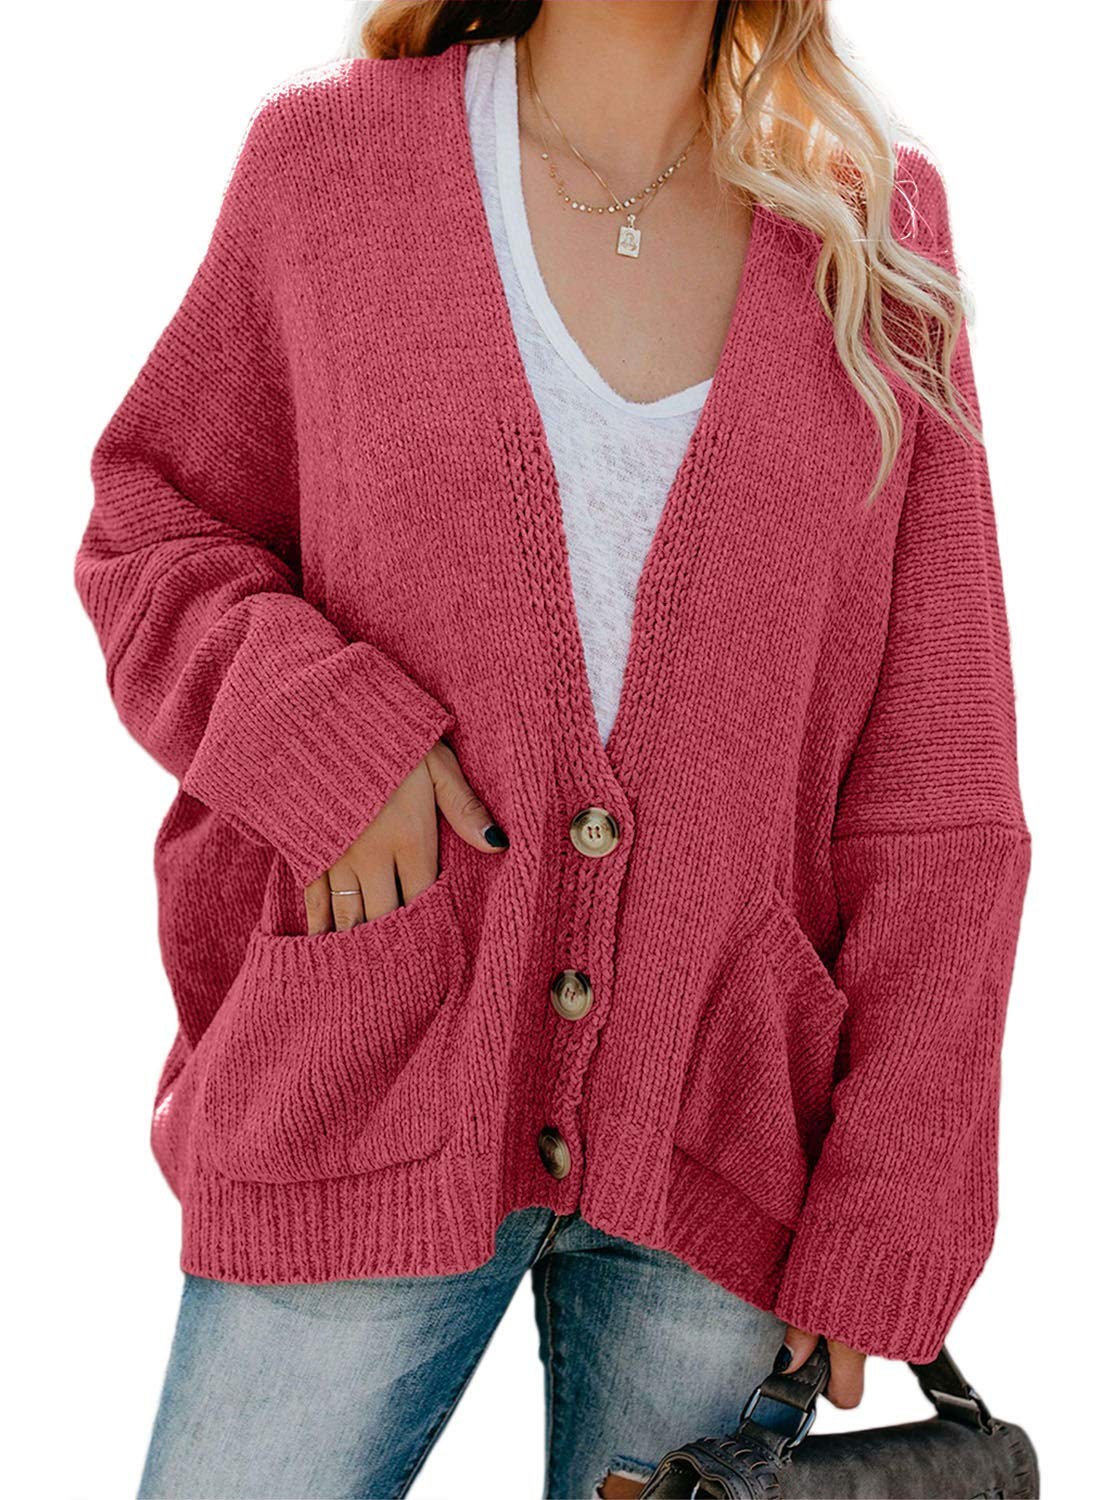 Dokotoo Womens Long Sleeve Open Front Autumn Button Down Chunky Oversized Loose Velvet Chenille Knitted Cardigans Sweaters Coats Knit Outwears Red X-Large by Dokotoo